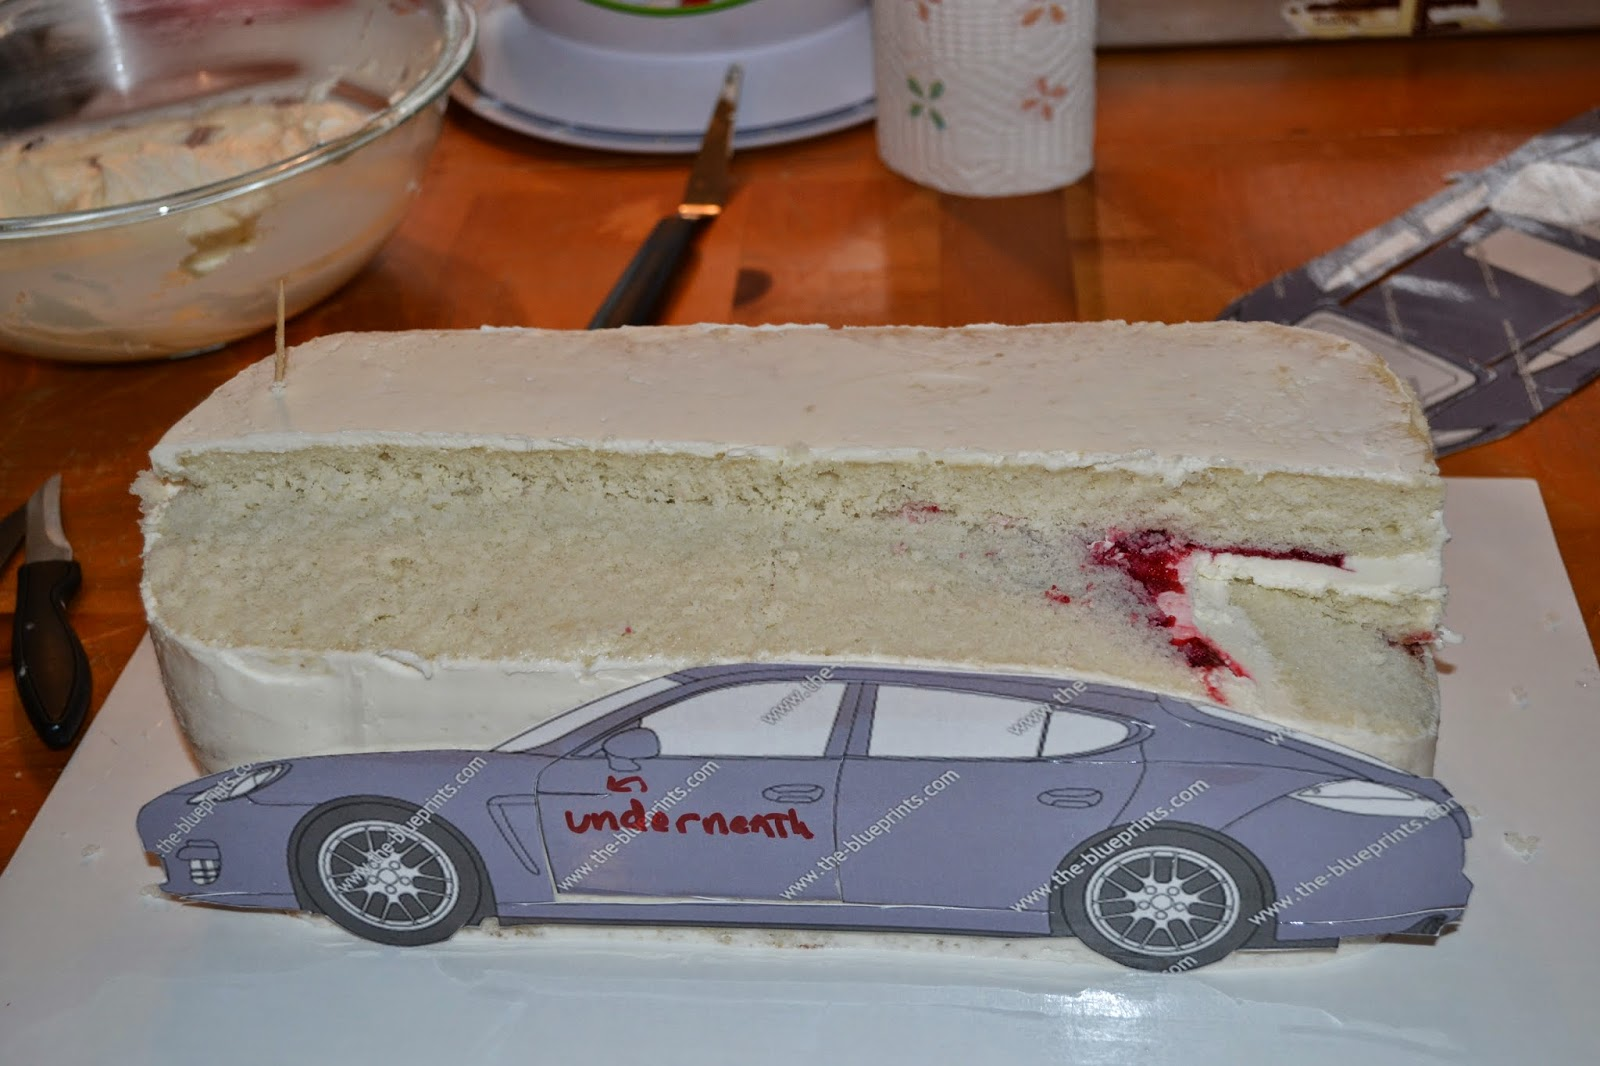 Cakes of the hamptons porsche cake after cutting out the basic design i used a paring knife to gently cut and round and soften the edges of the car mike mccarey video demonstrates this malvernweather Gallery